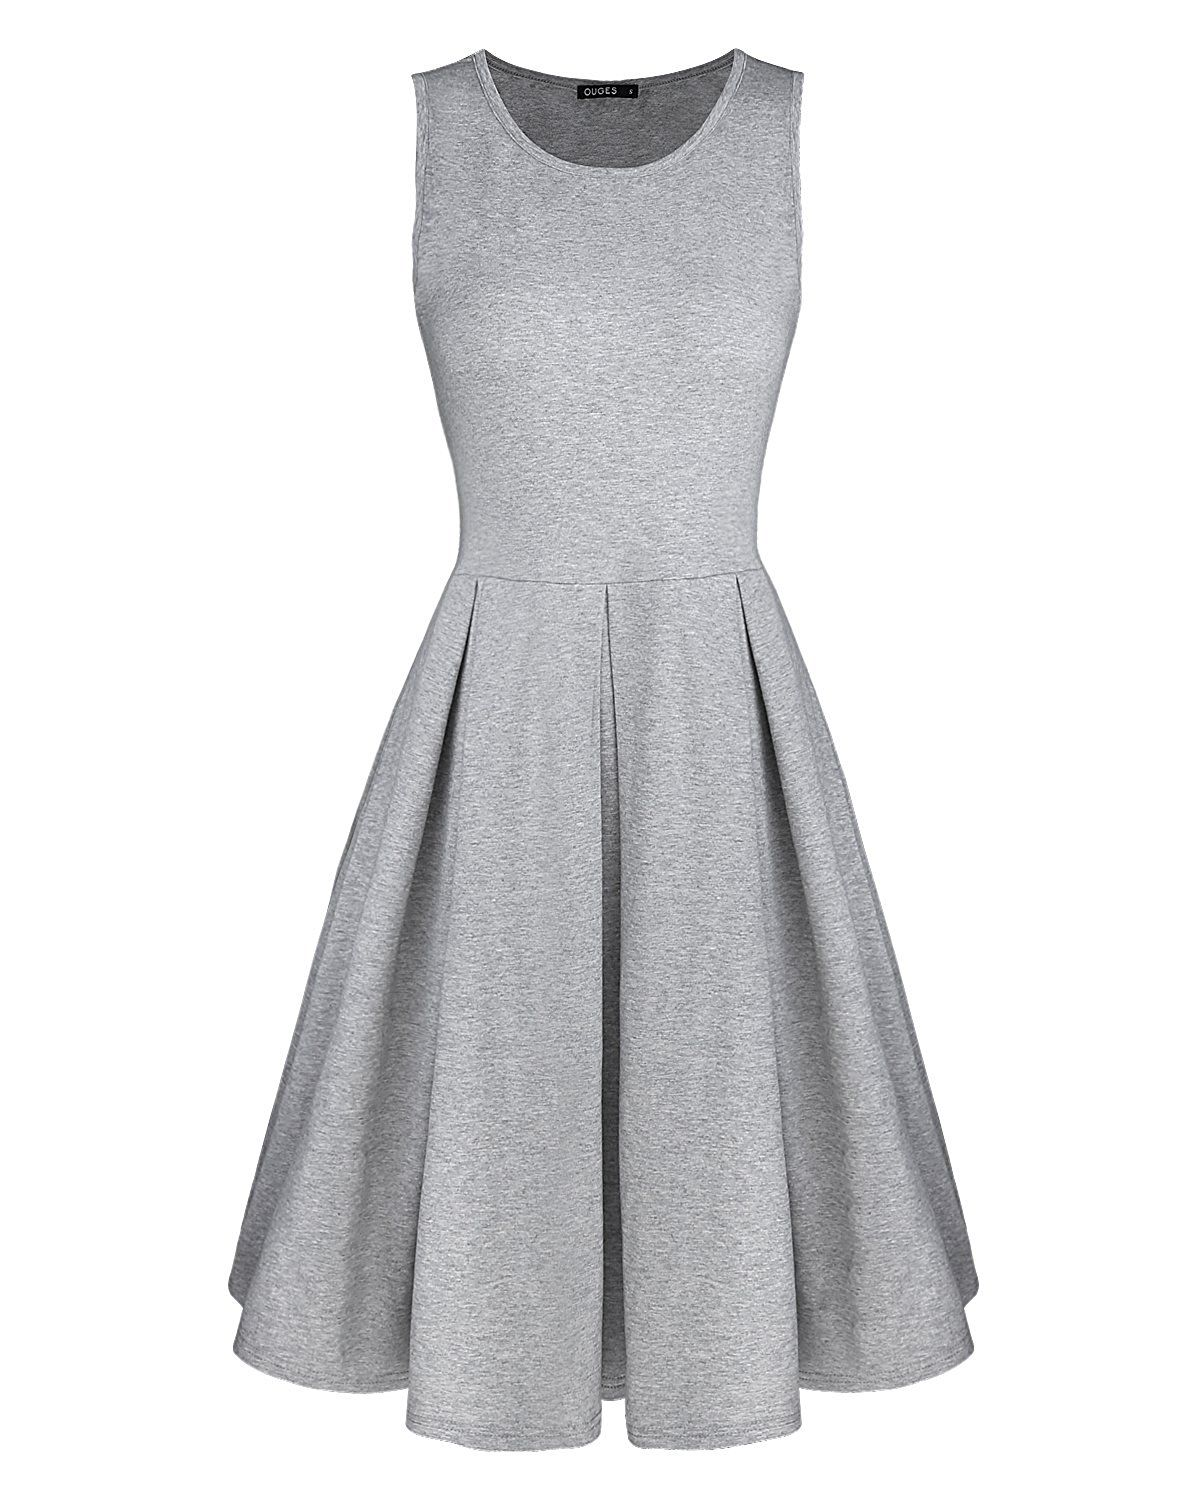 9d9923f769d Styleword Women s Sleeveless Casual Cotton Flare Dress at Amazon Women s  Clothing store